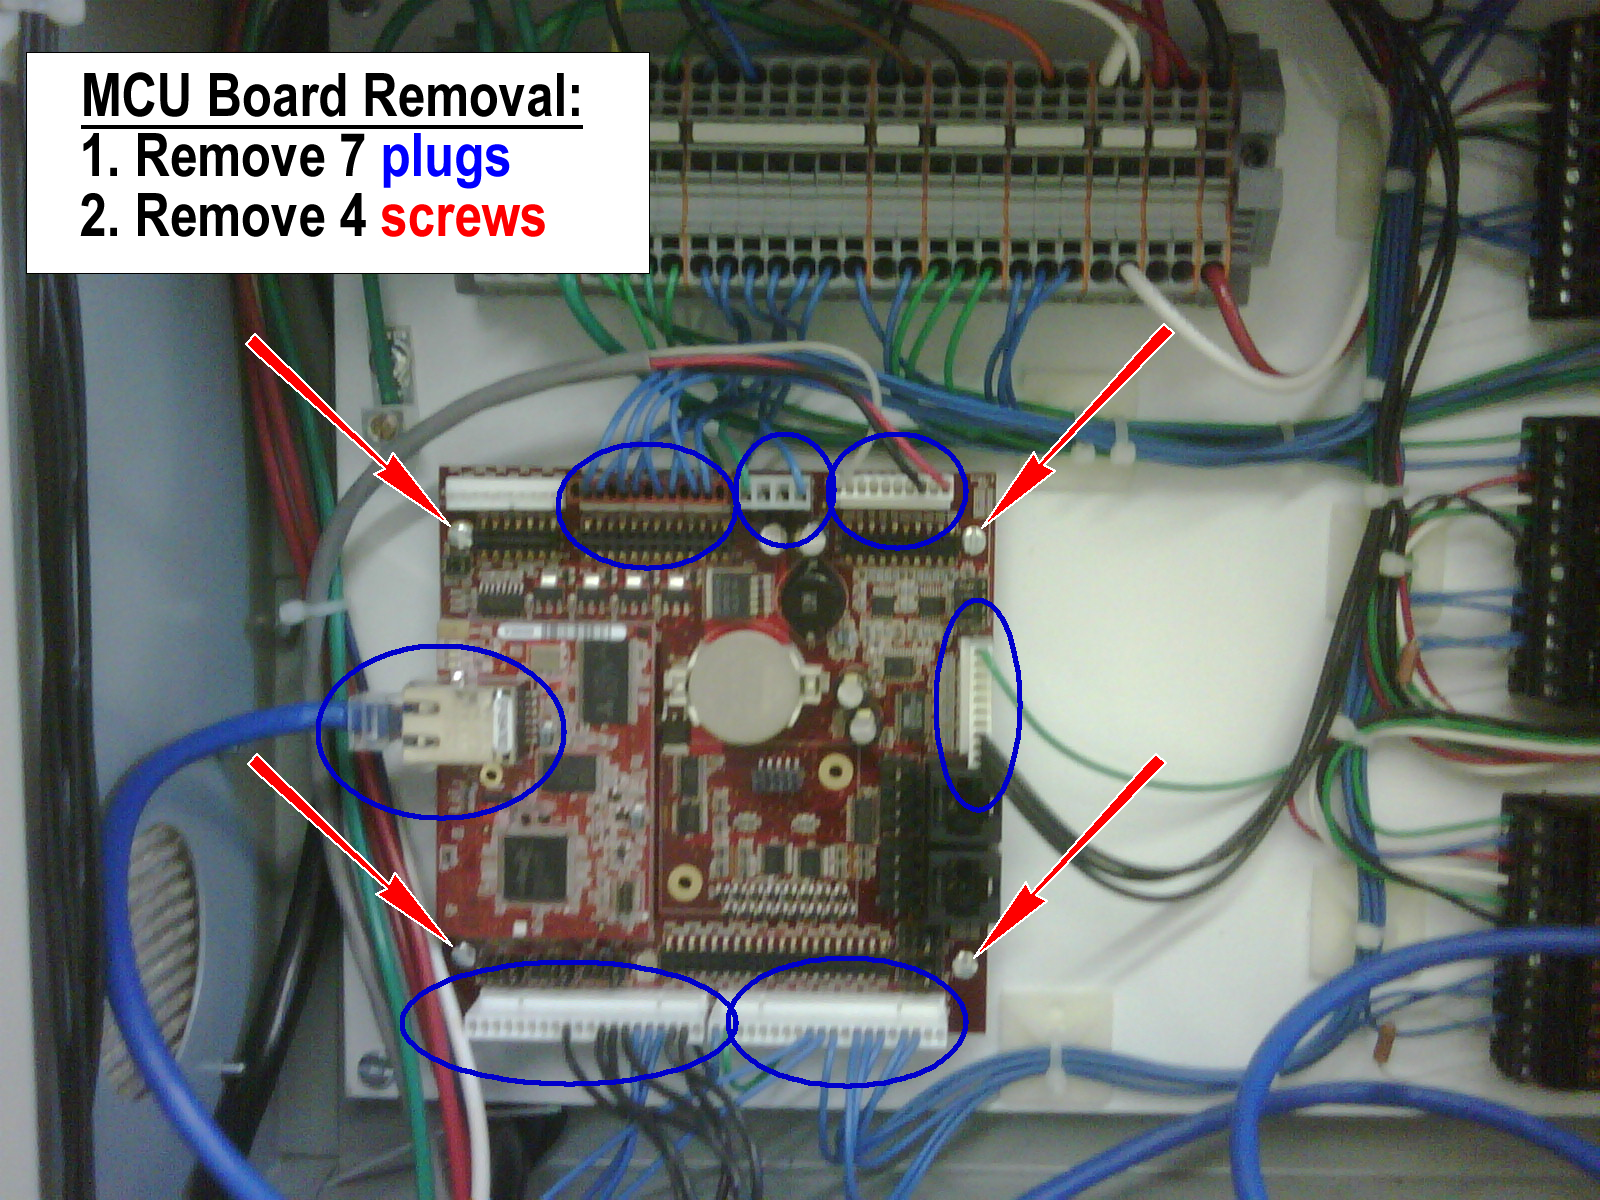 Removing the MCU Board Instructions (1).jpg